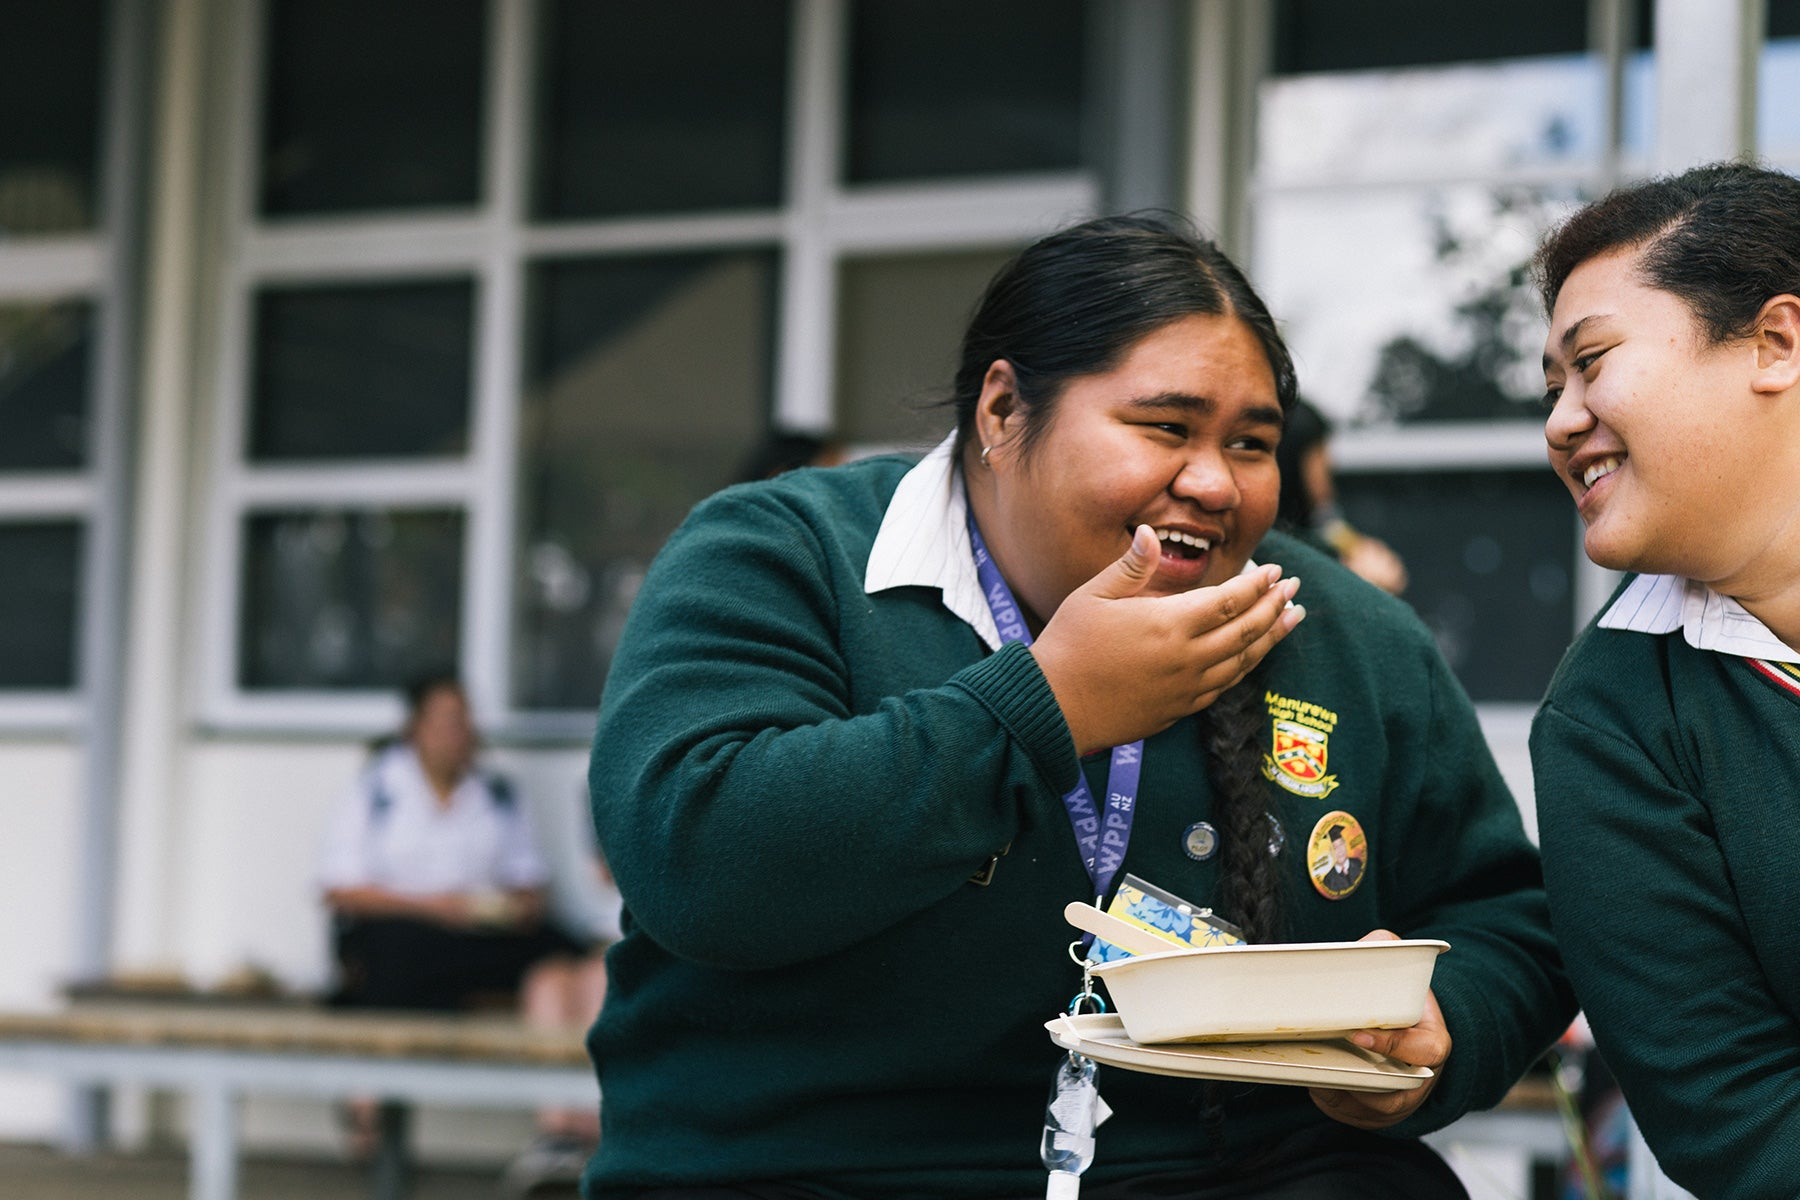 Manurewa High School Head Girl enjoying her lunch in Ecoware compostable packaging